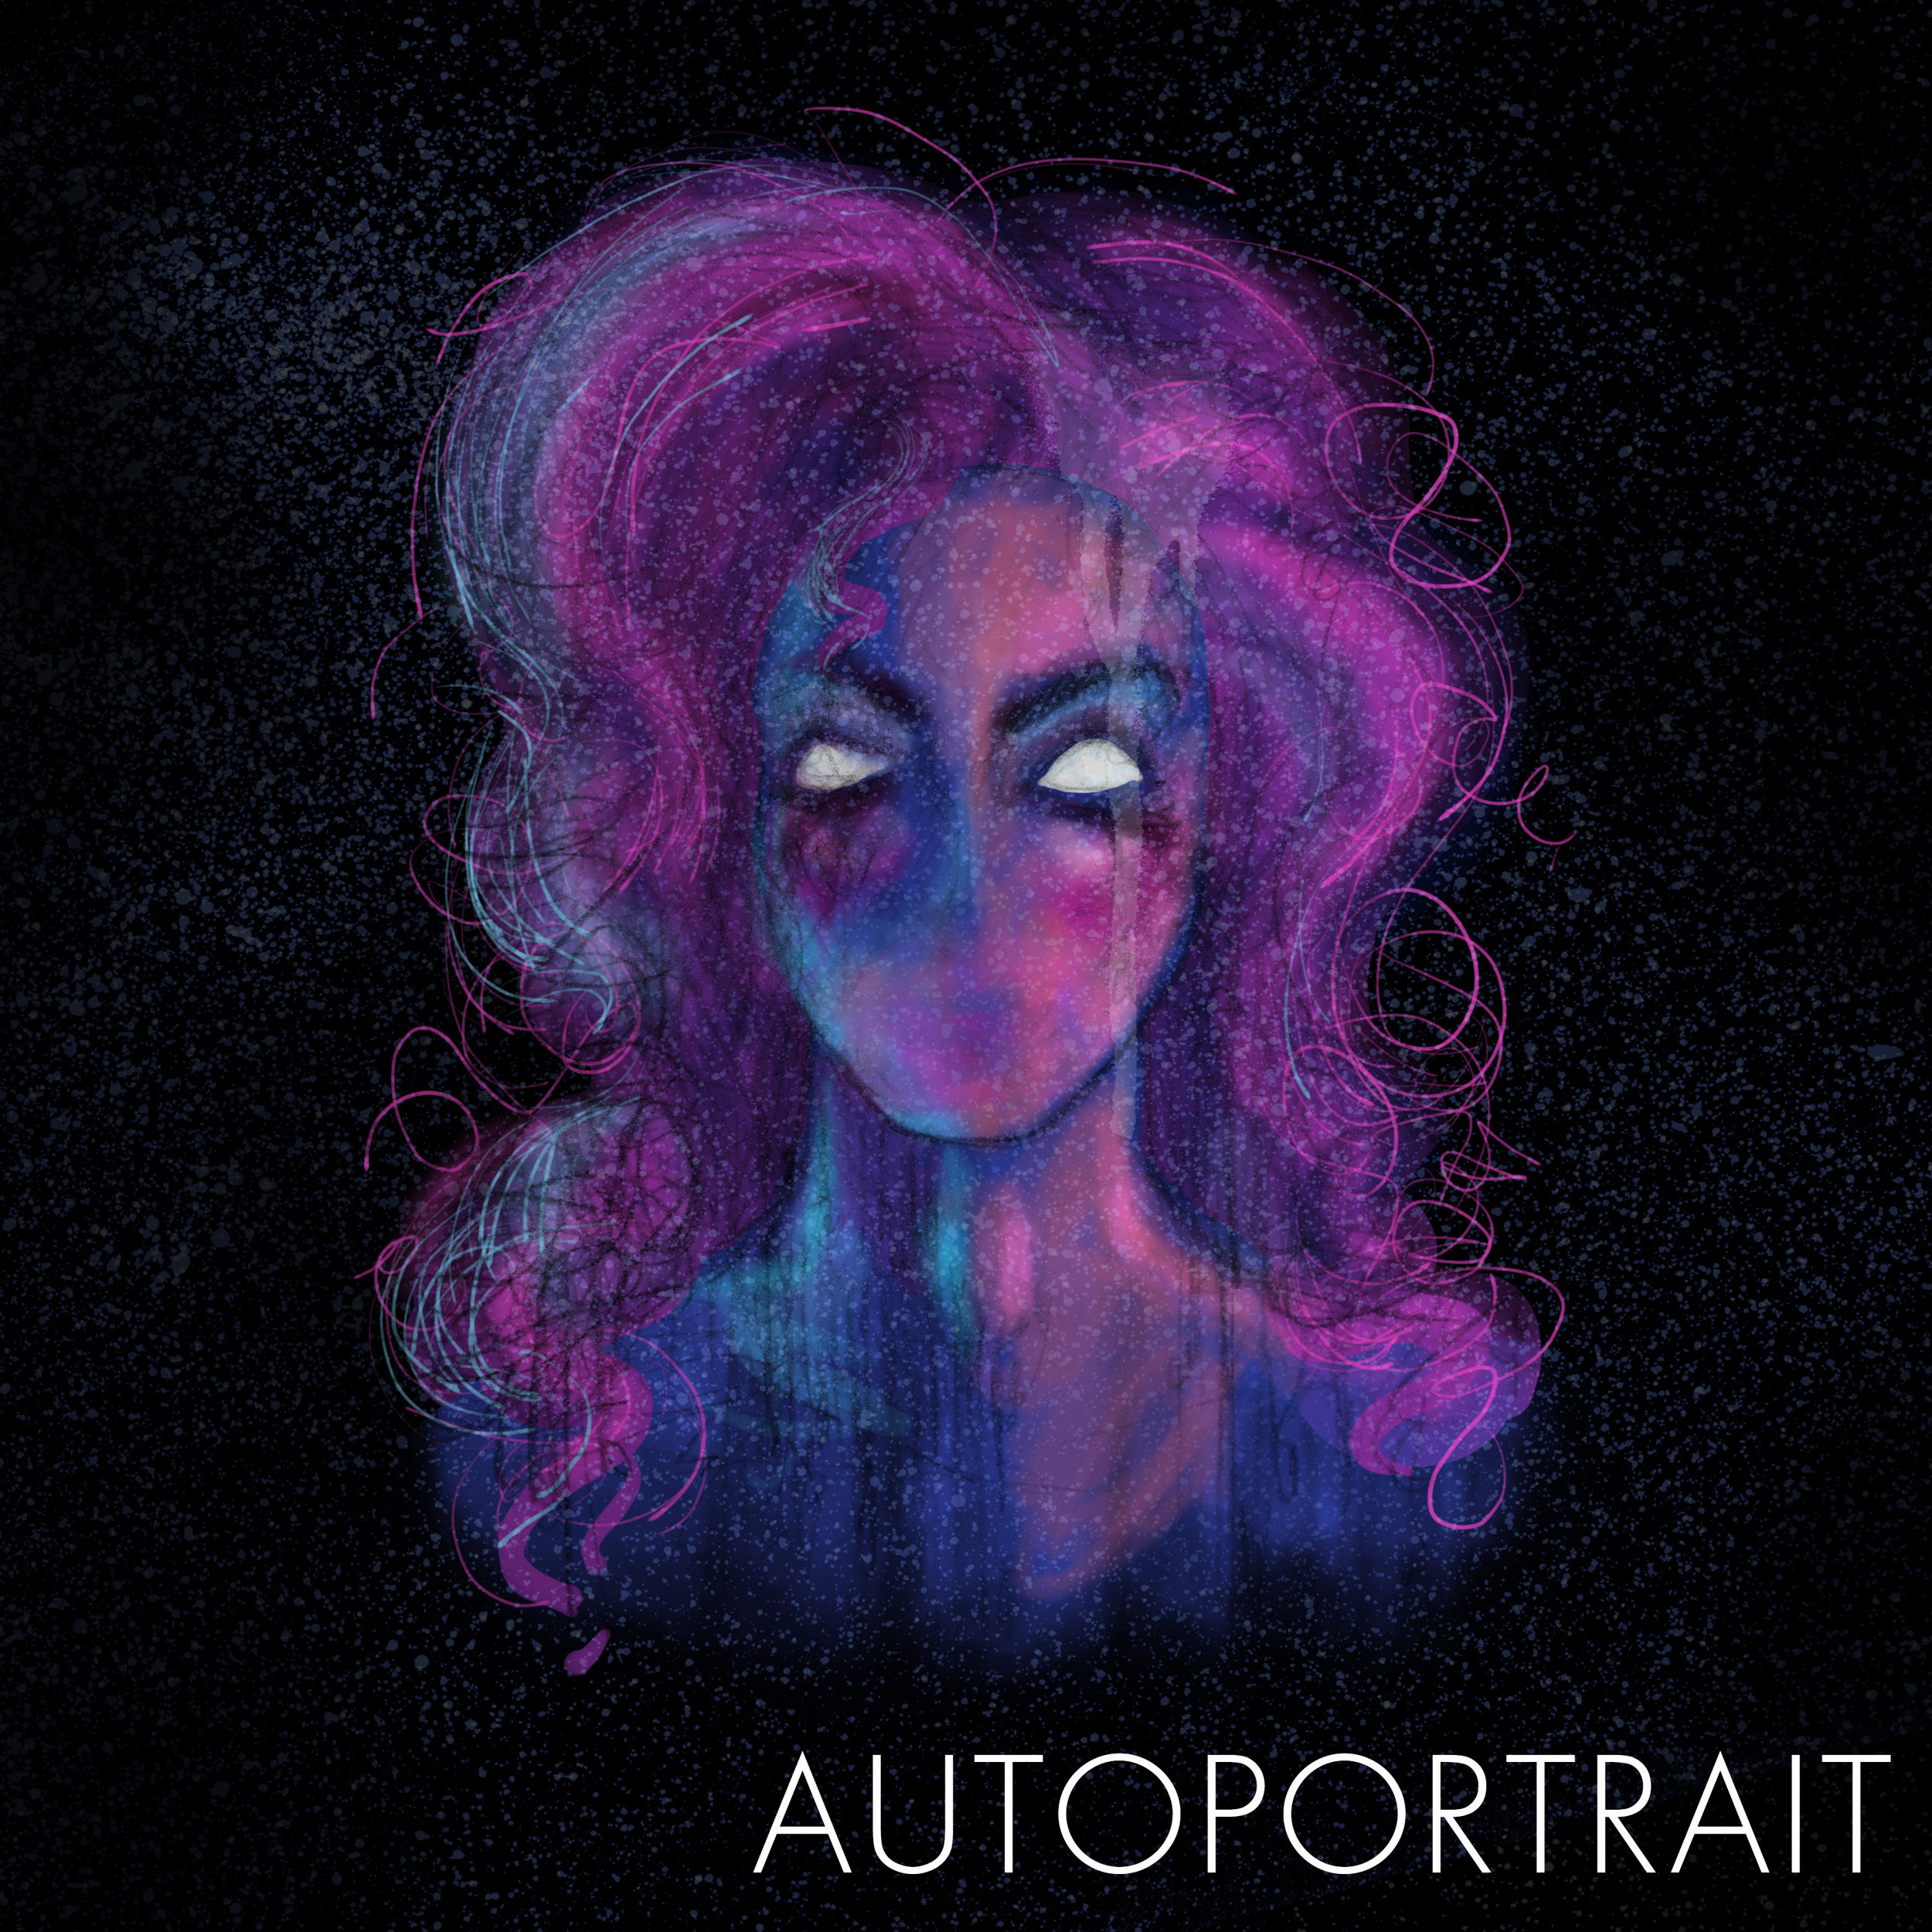 Autoportrait Poster (FINAL).jpg